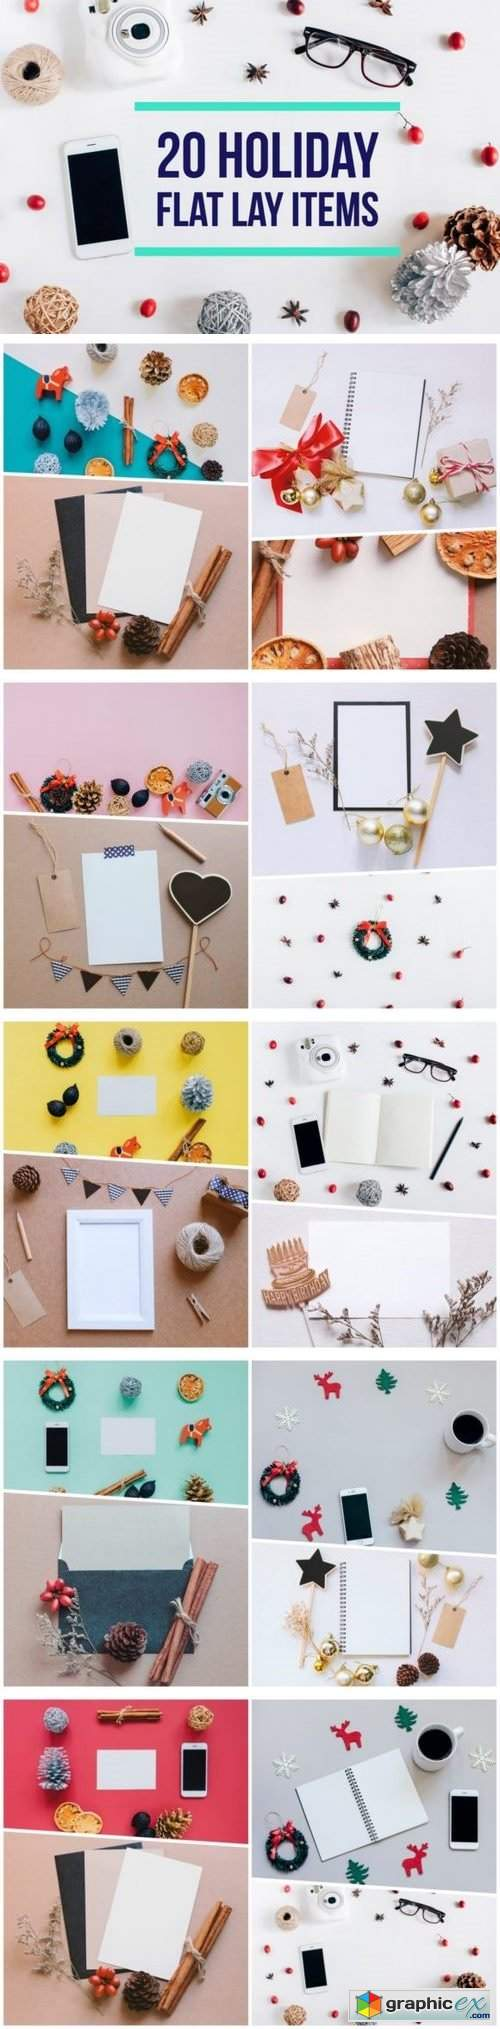 20 Holiday flat lay items collection